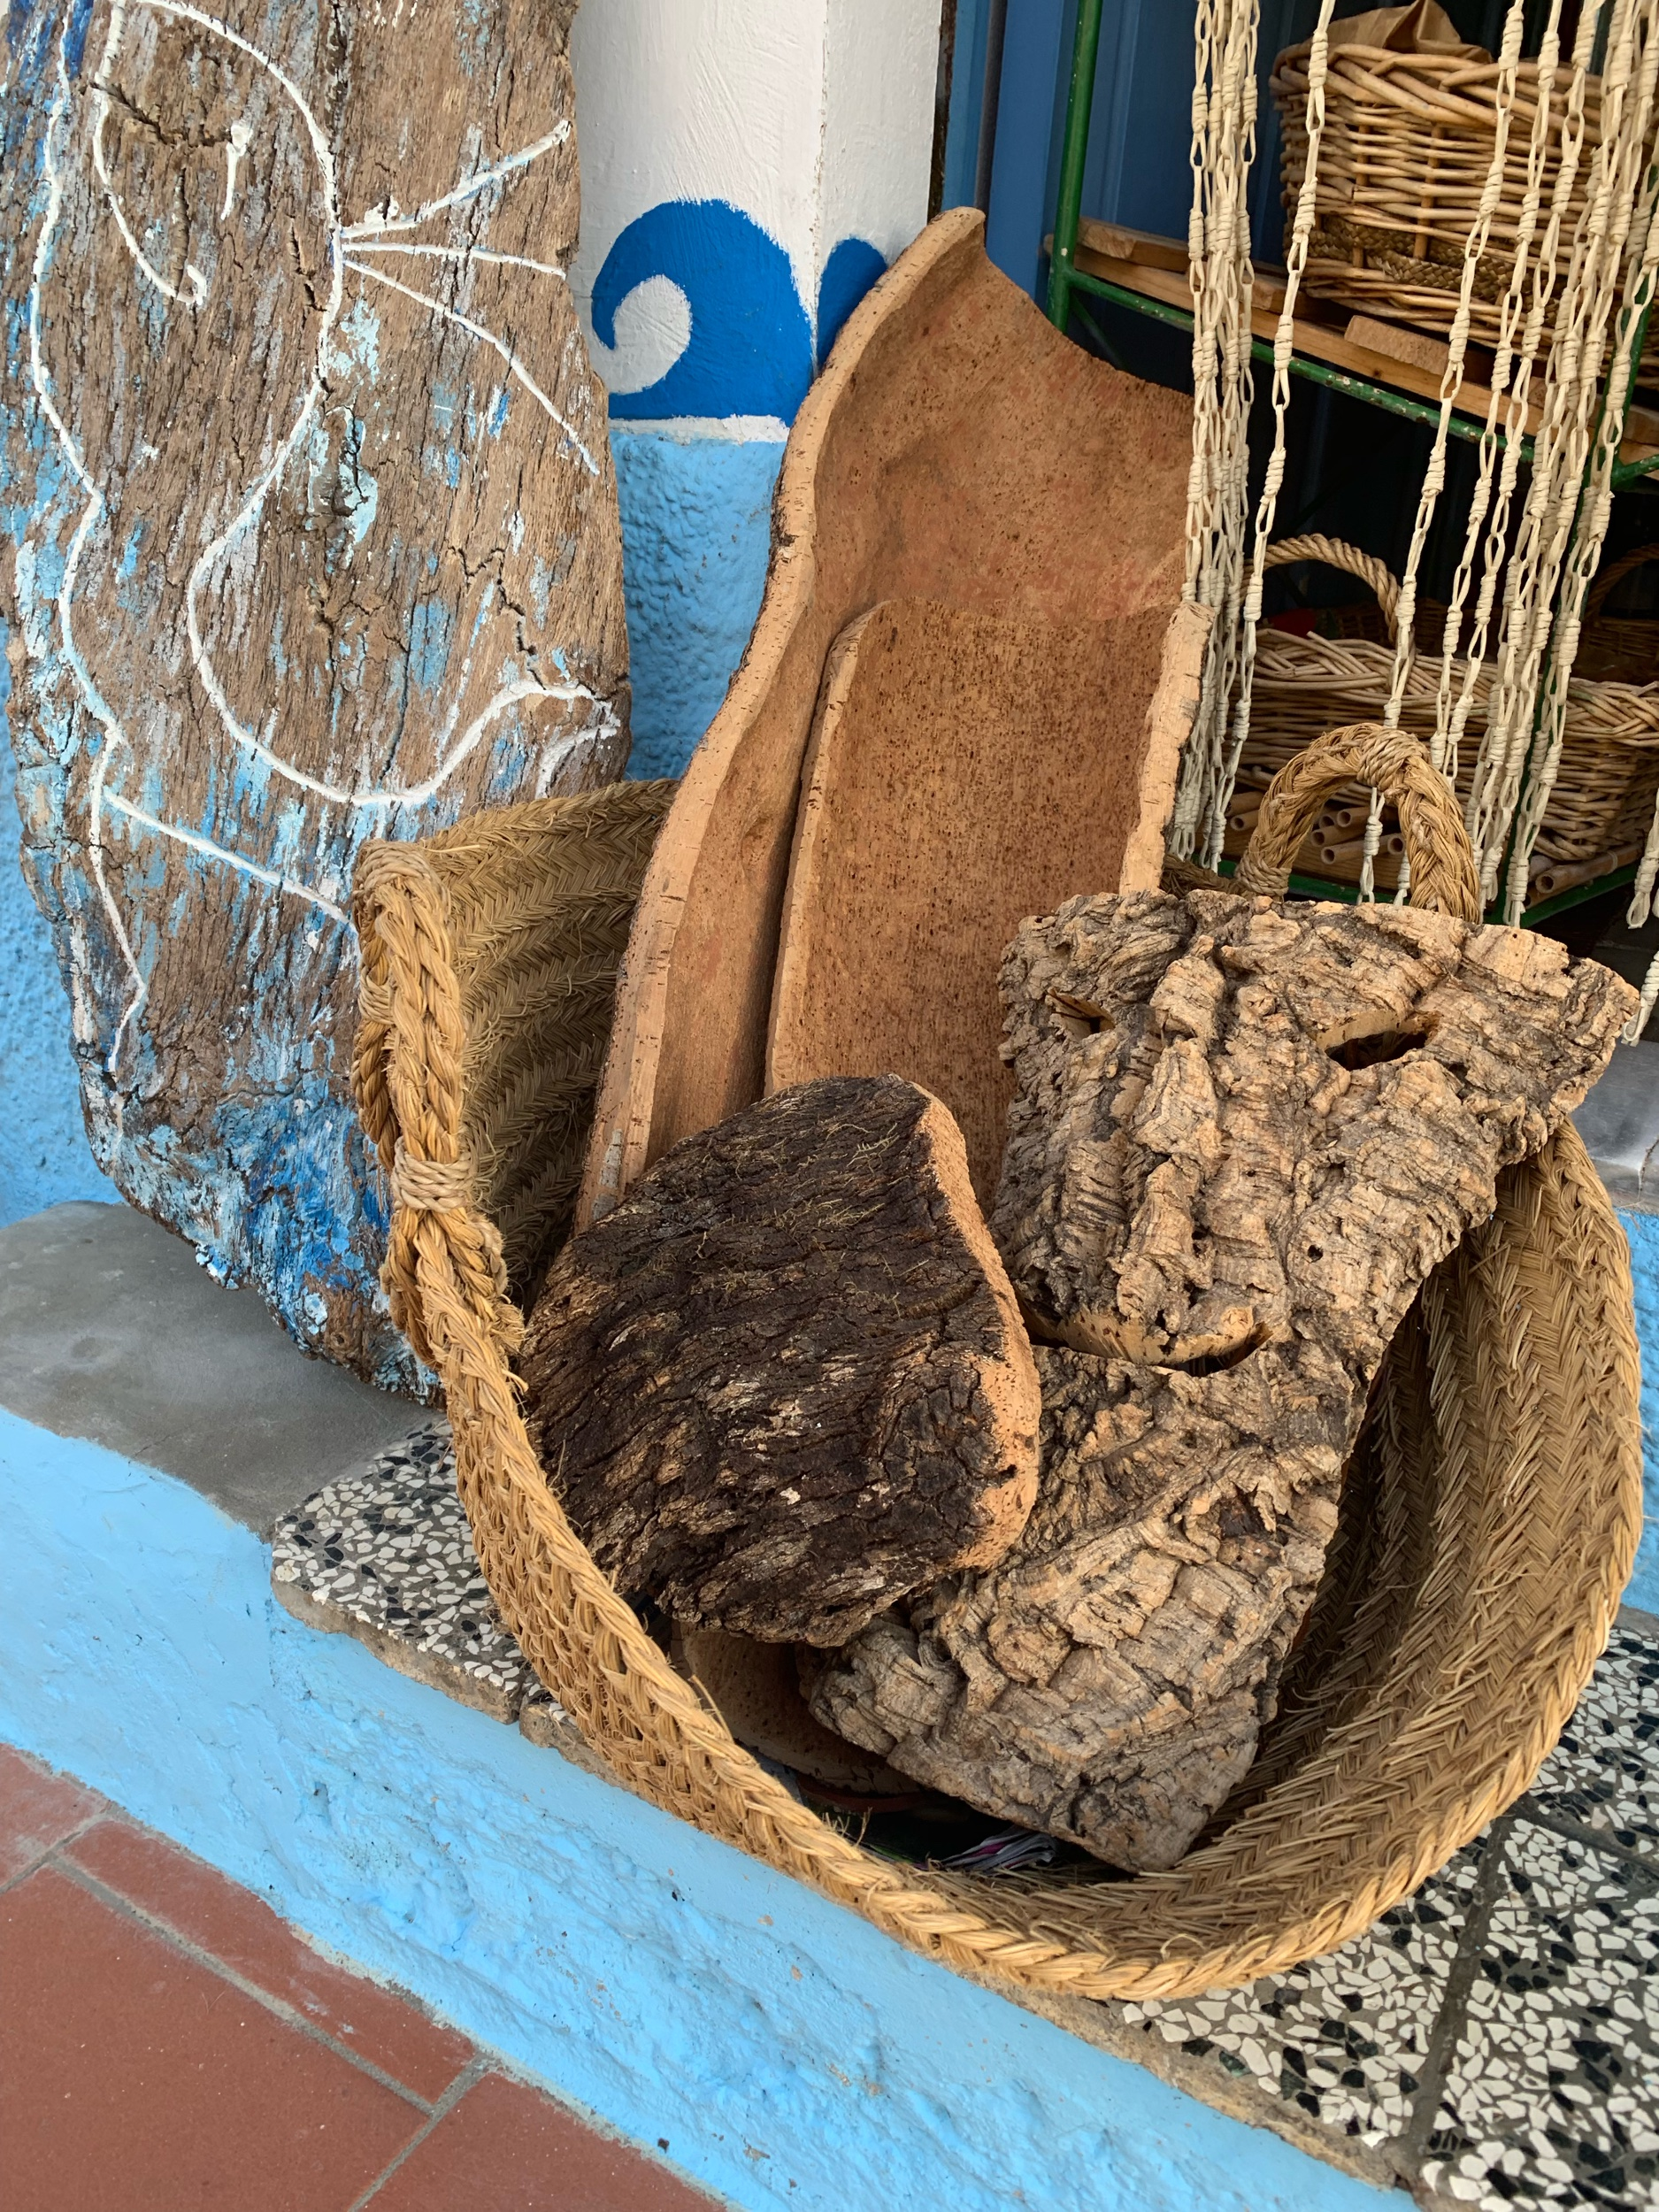 A basket of cork tree bark I saw while holiday in Sardinia. Northern Sardinia is the only part of Italy with cork trees.